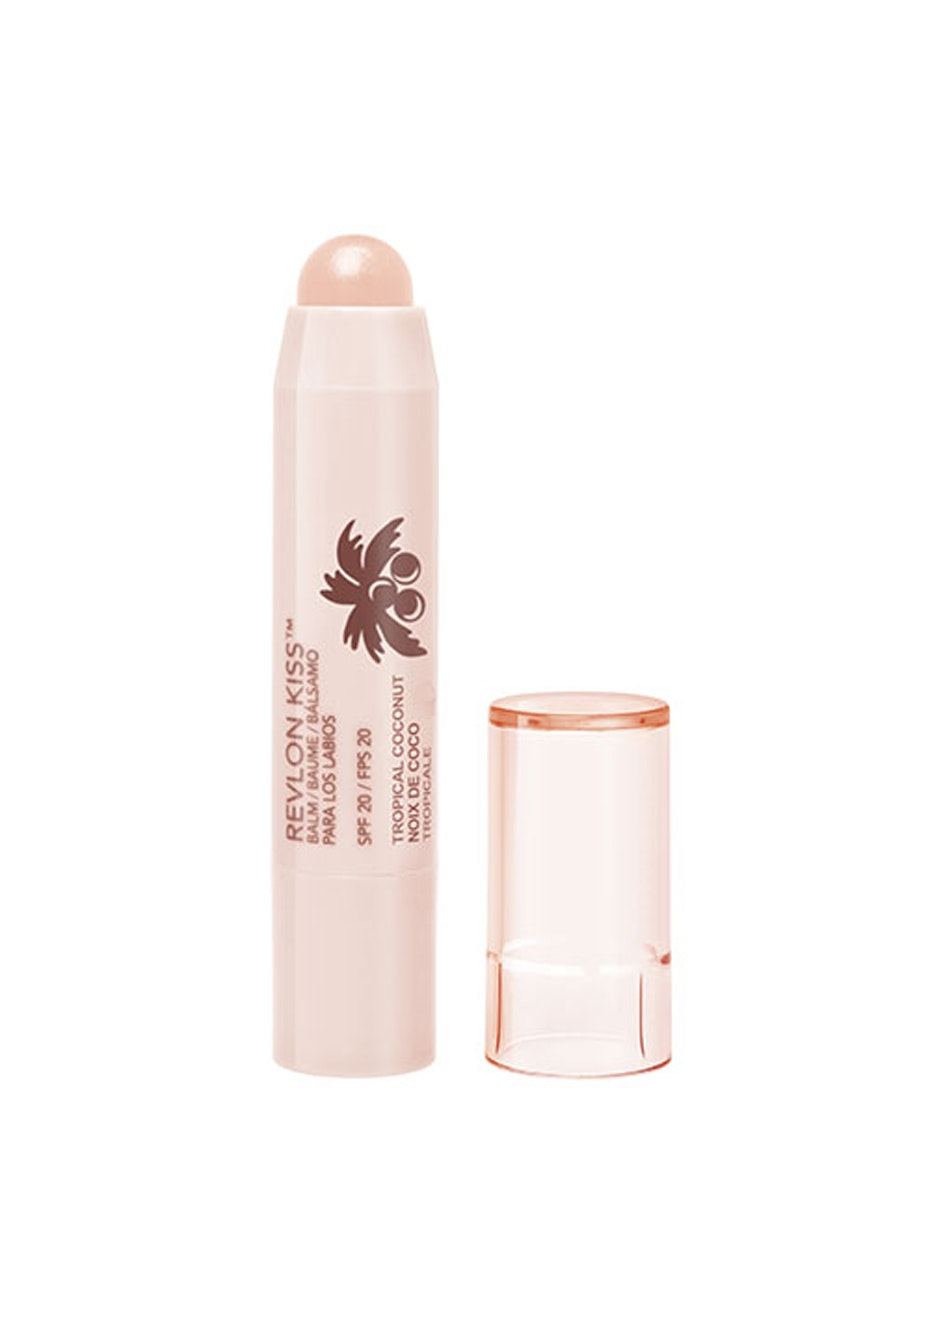 Revlon Kiss Balm spf20 010 TROPICAL COCONUT